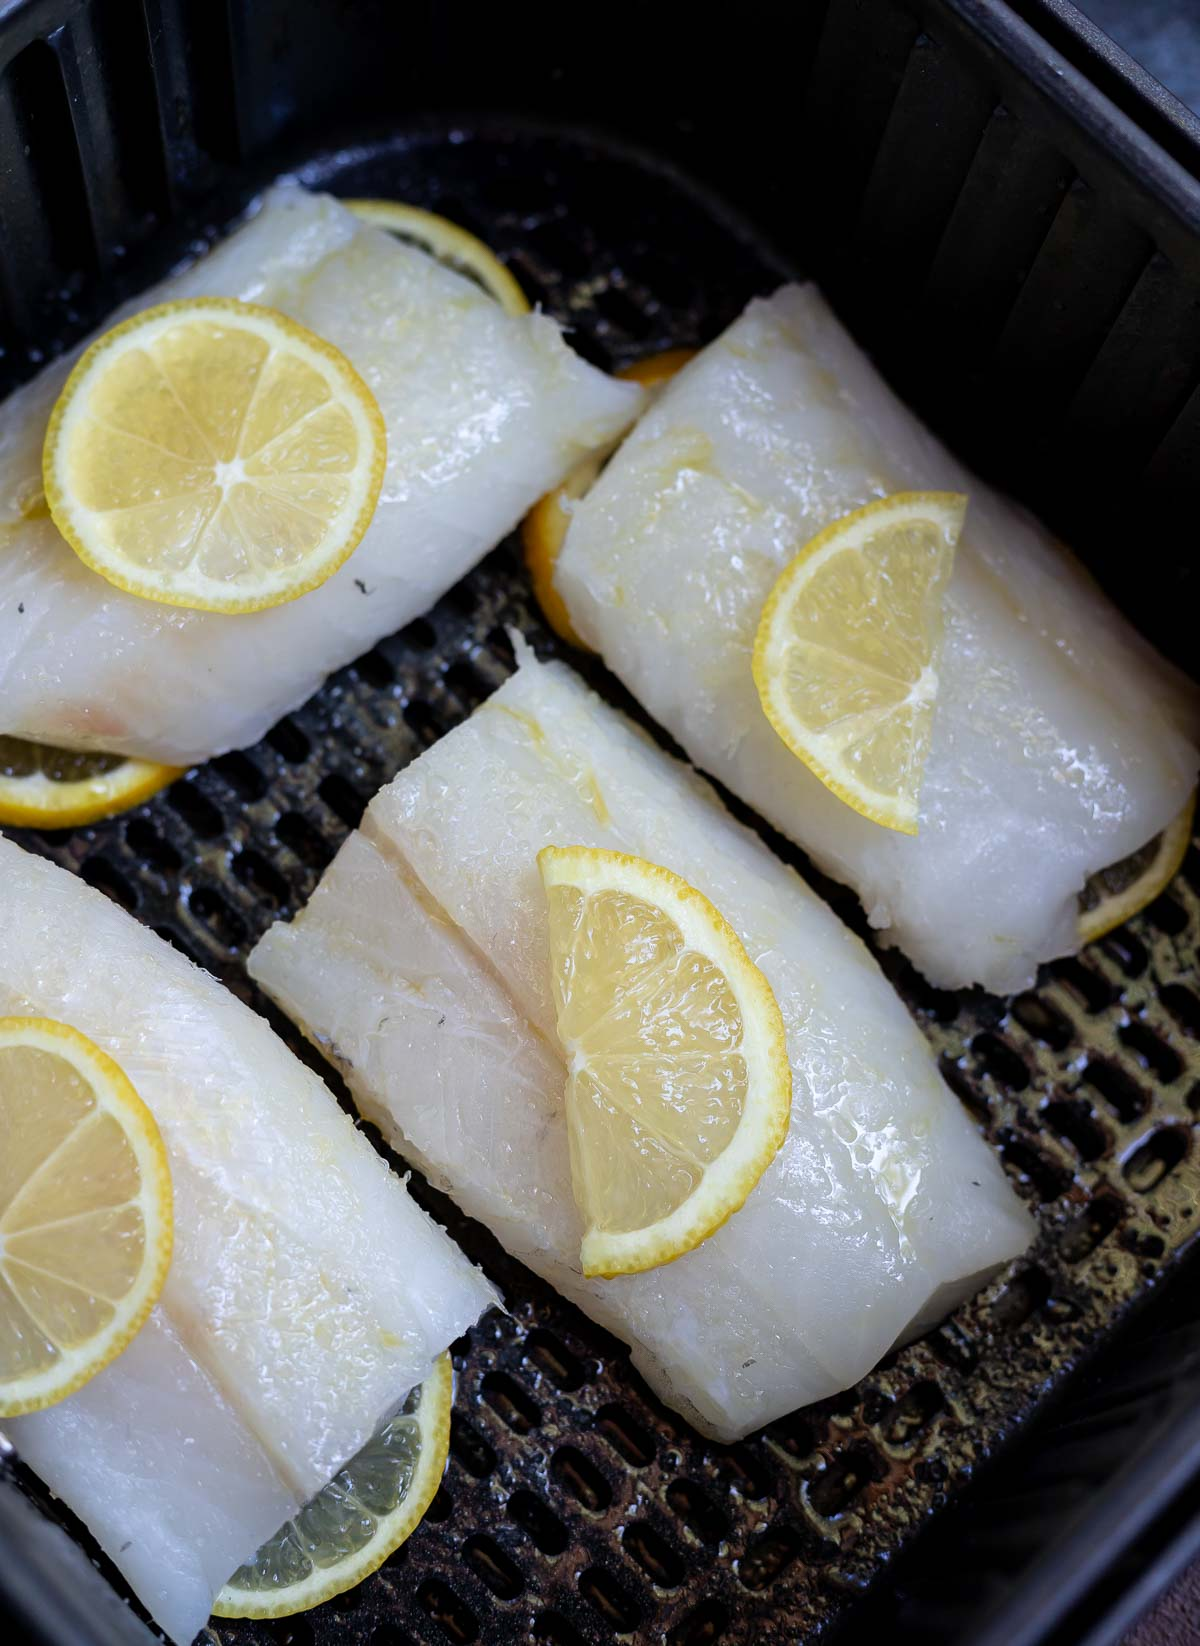 raw cod fish topped with lemon slices